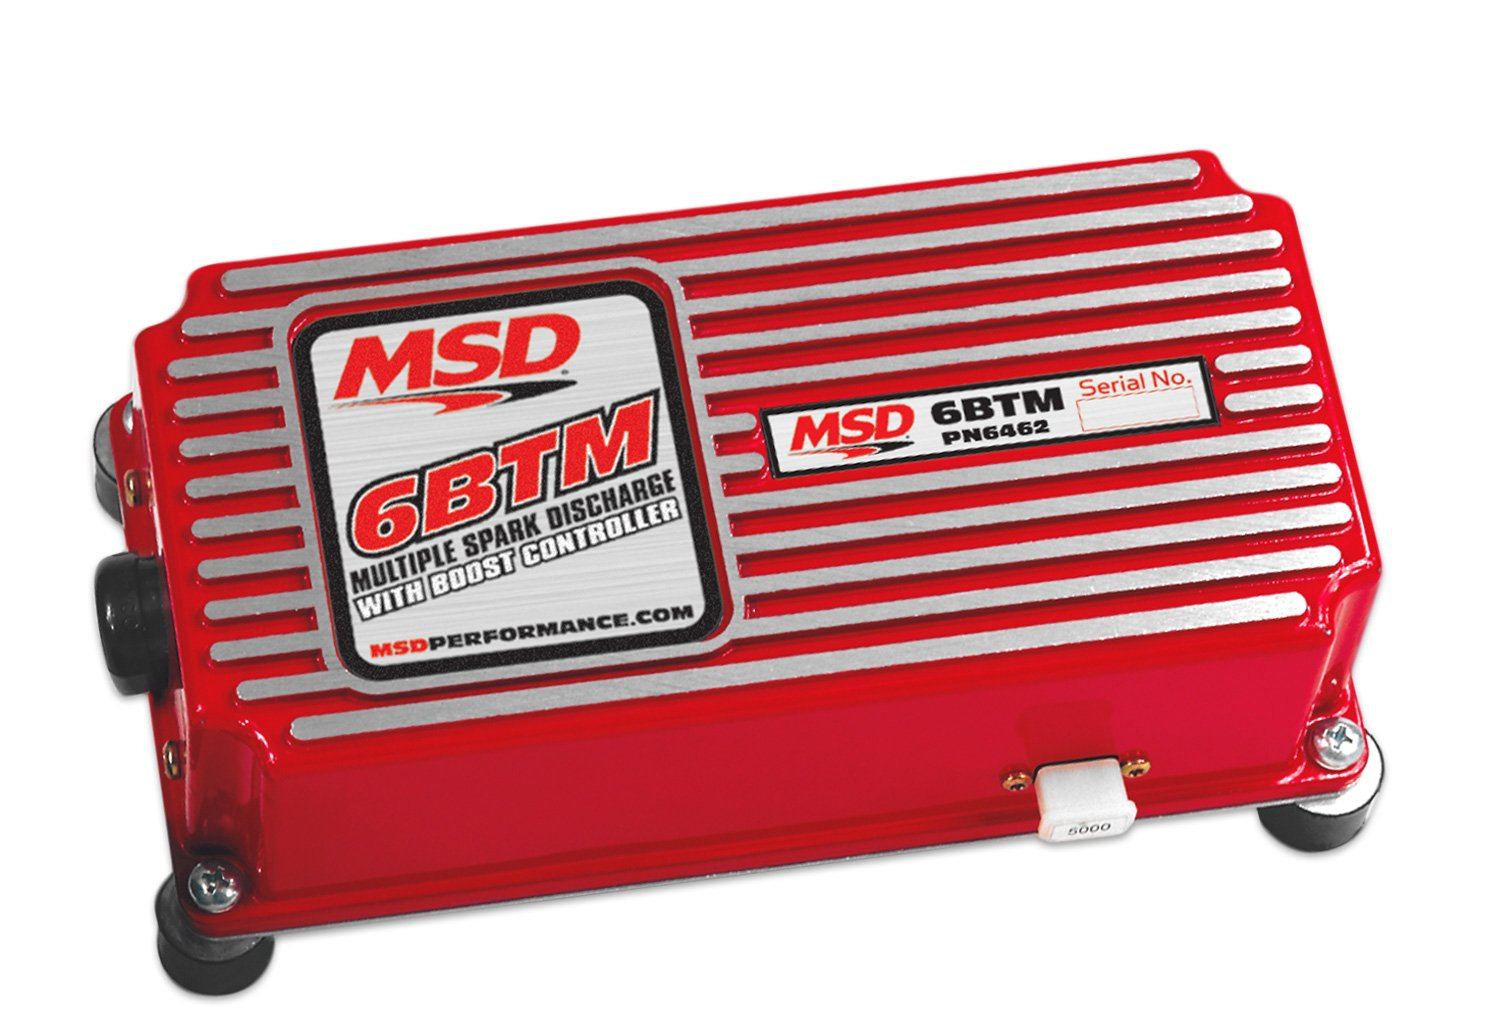 msd 6462 msd 6 btm boost timing master msd performance products rh msdperformance com MSD Digital 6AL Wiring-Diagram MSD Ignition